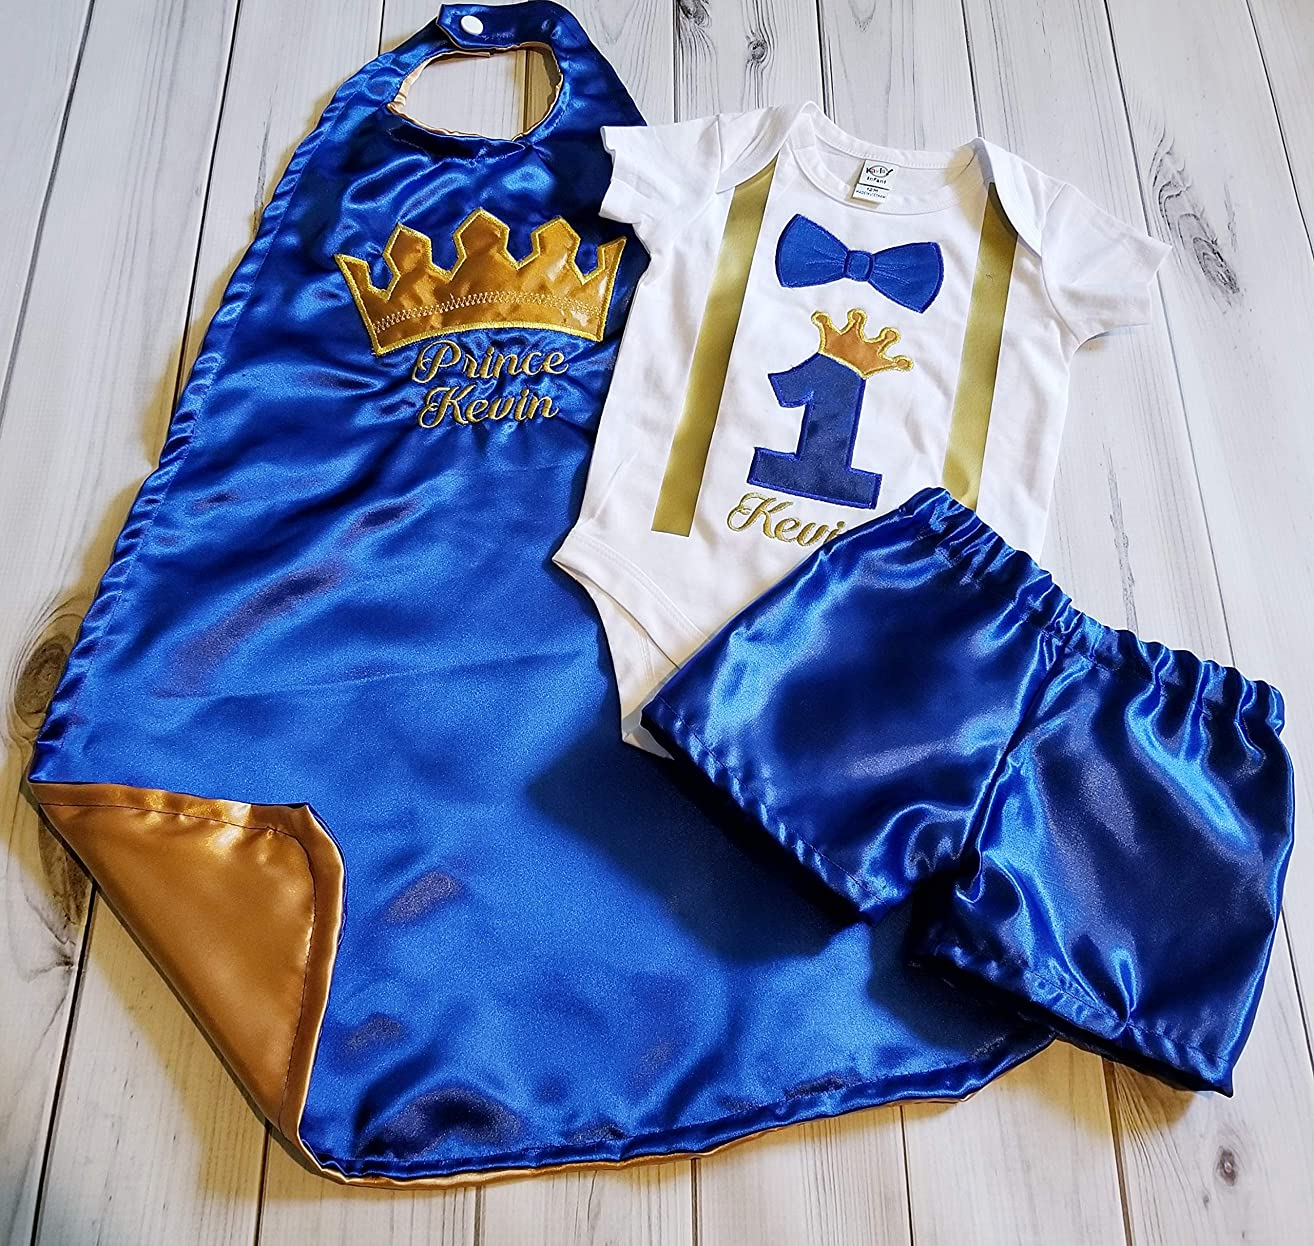 3 piece 1st 2nd Birthday baby boy birthday set outfit Smash cake photo prop KING or PRINCE Royal Blue gold crown onesie cape blue diaper cover or shorts 6 months to 24 months